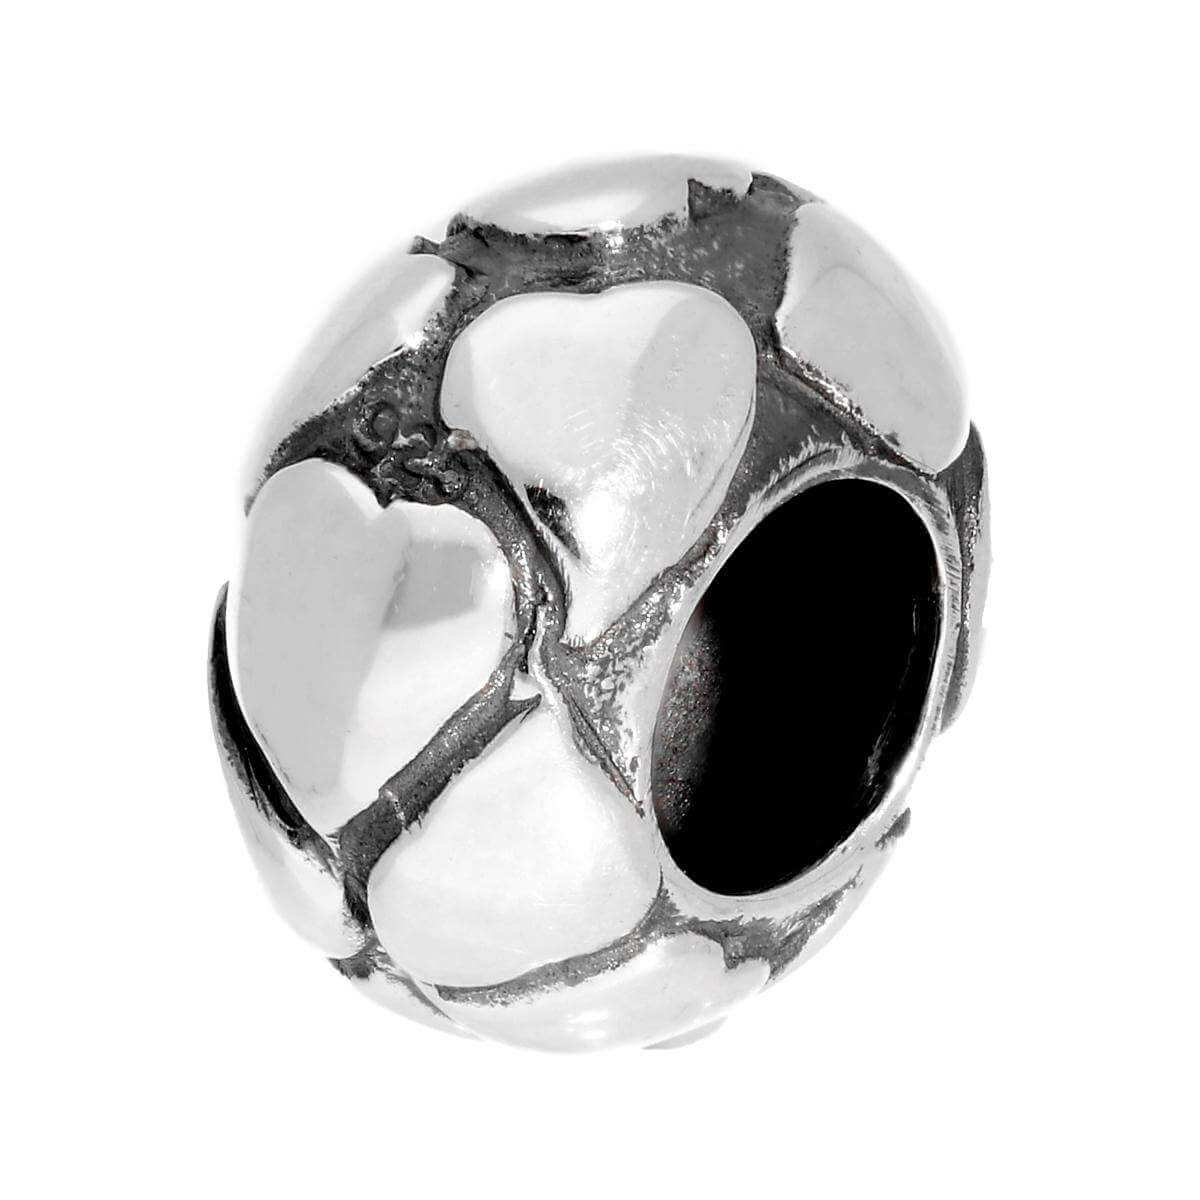 Sterling Silver Heart Patterned Bead Charm